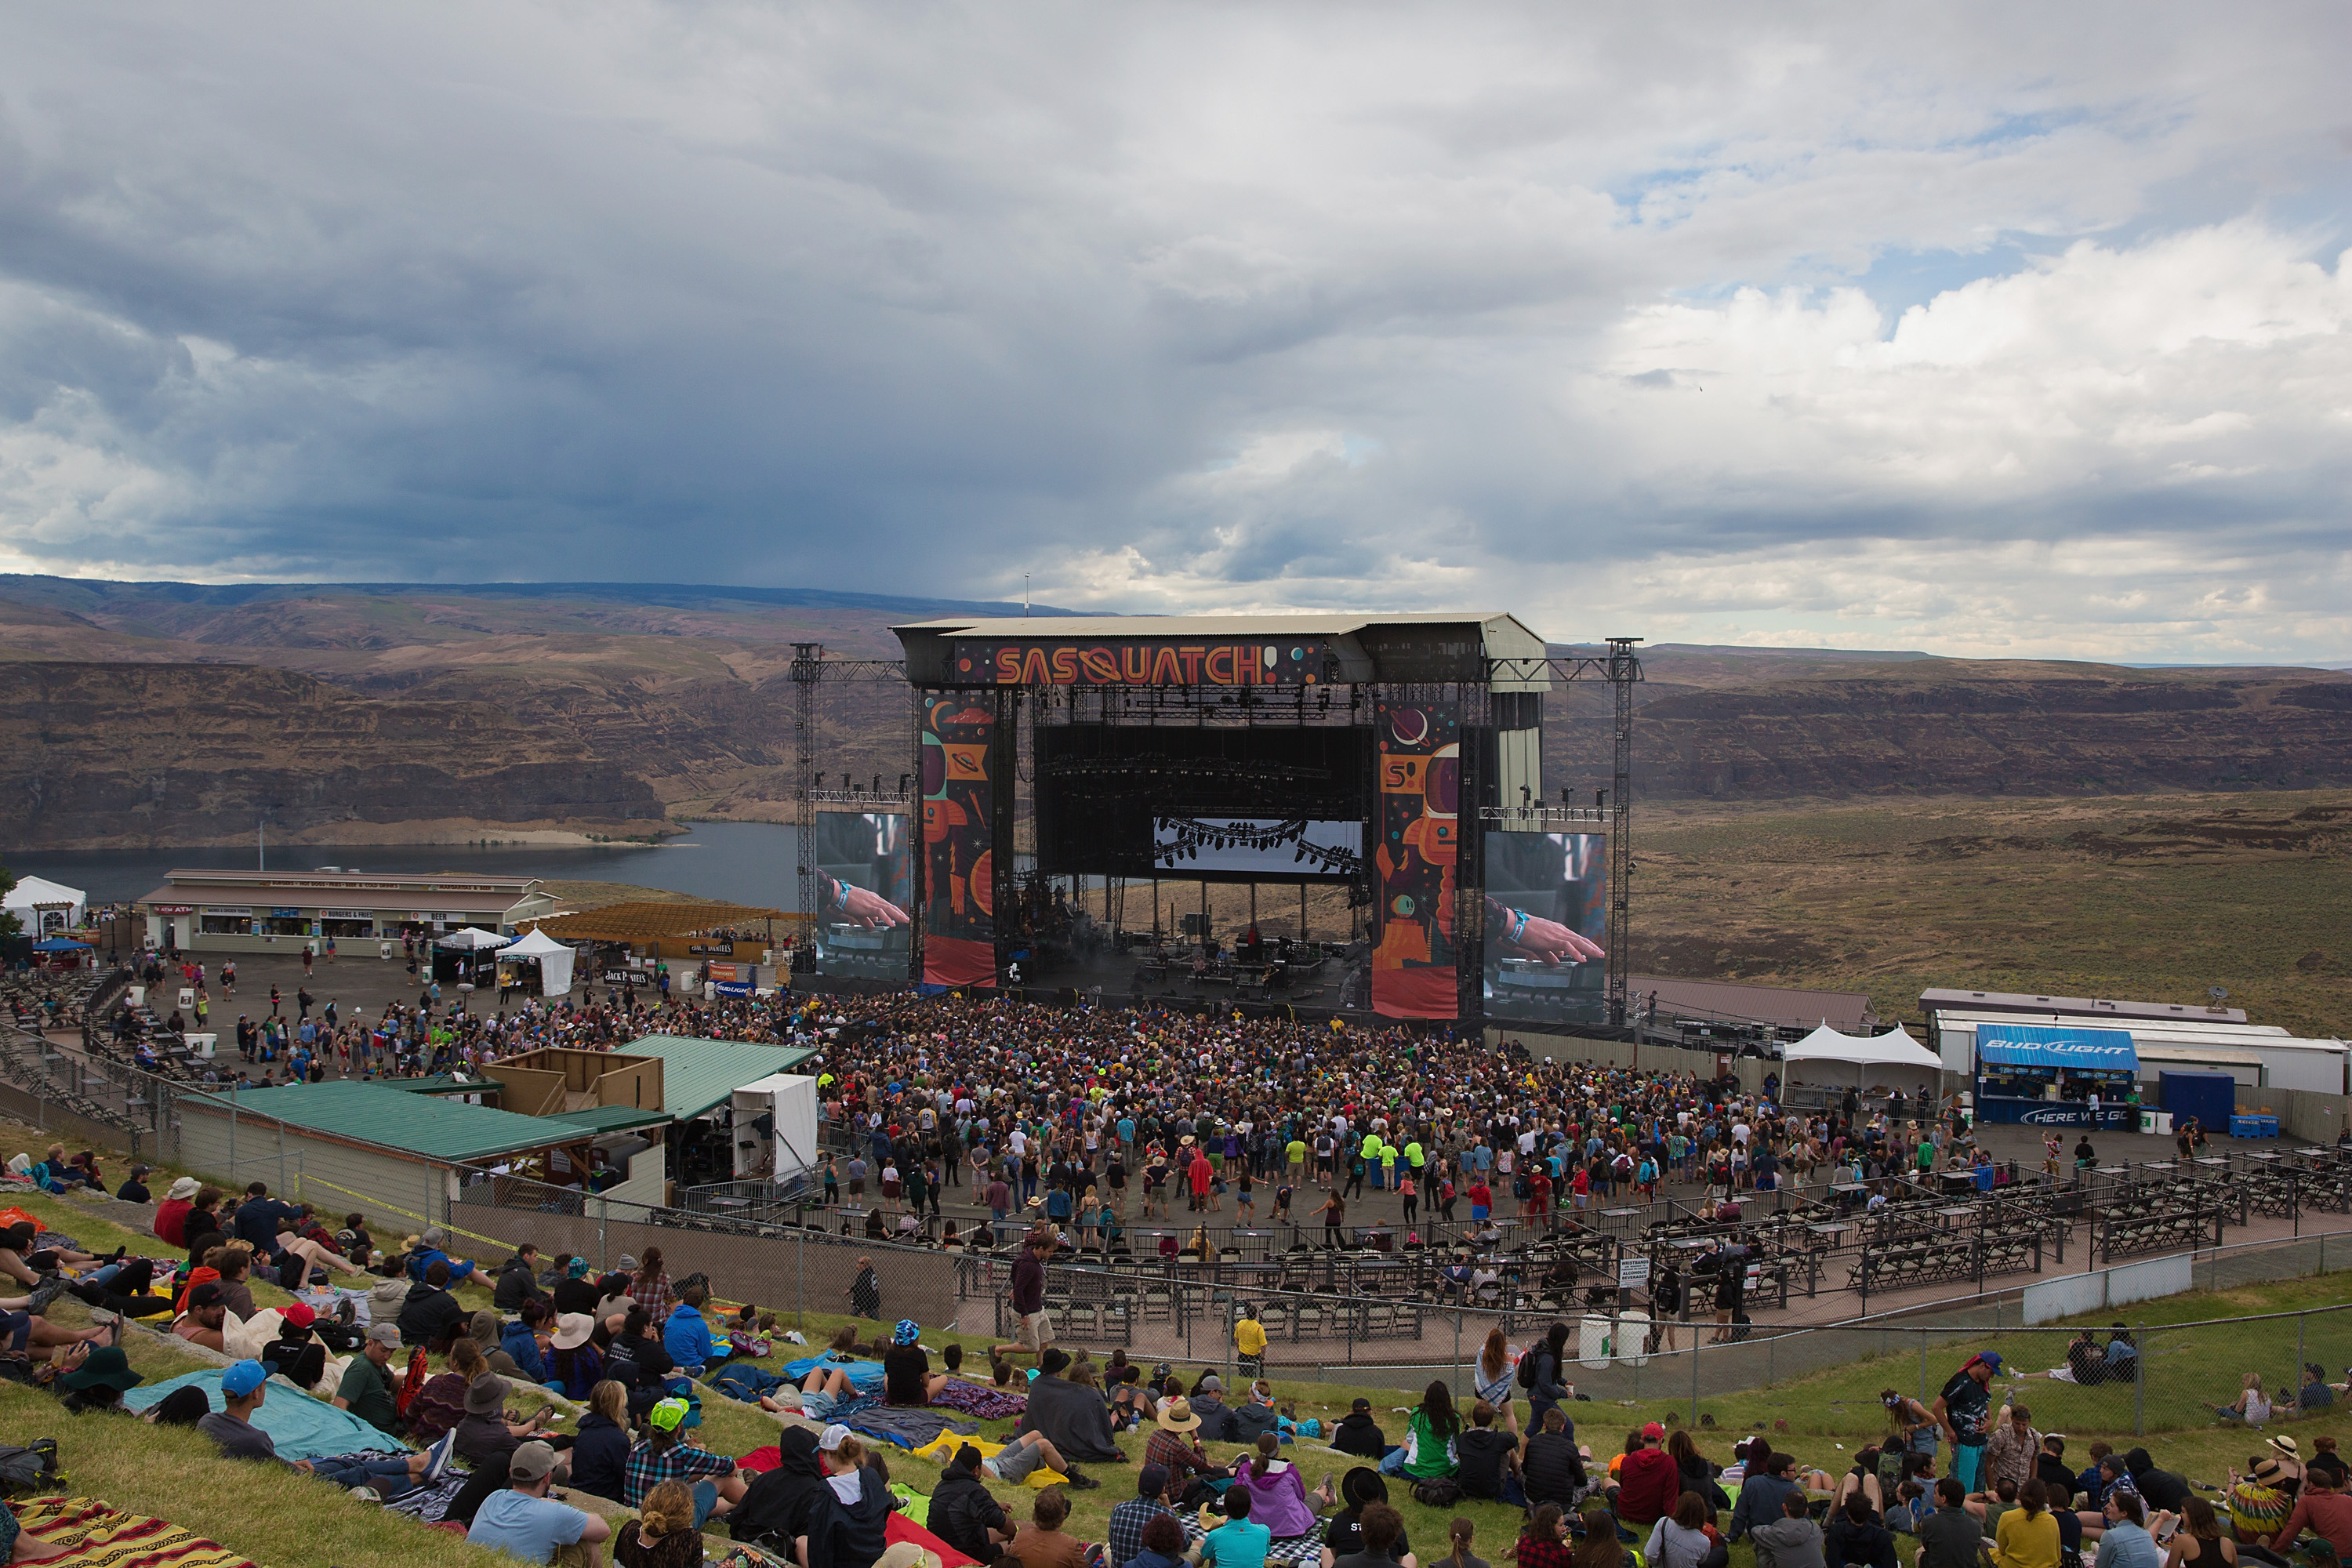 GEORGE, WA - MAY 25: General view of atmosphere during the Sasquatch! Music Festival at The Gorge on May 25, 2015 in George, Washington. (Photo by Mat Hayward/FilmMagic)